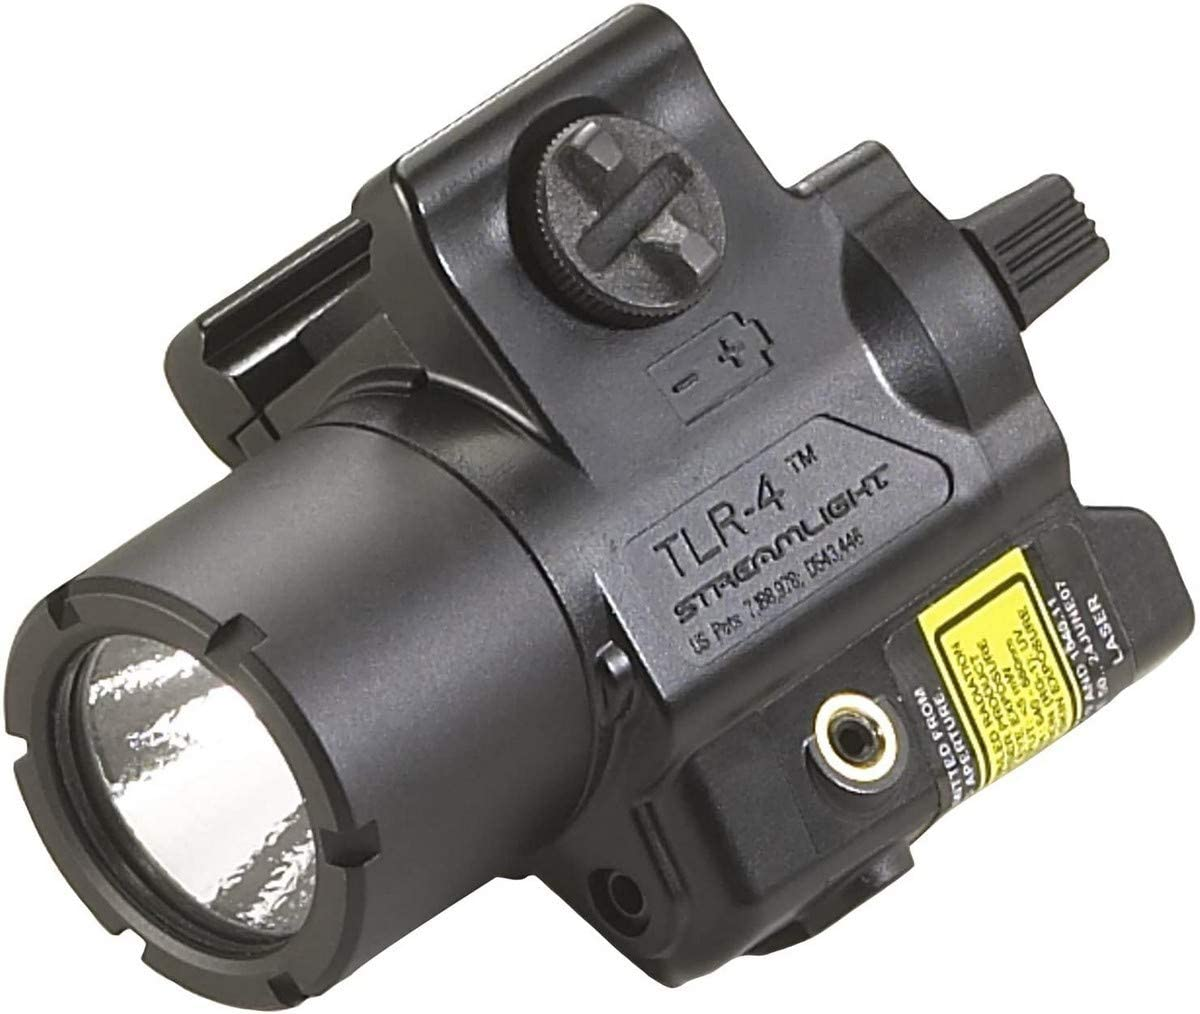 This is an image of Streamlight TLR-4 Tac Light with Laser, black color.